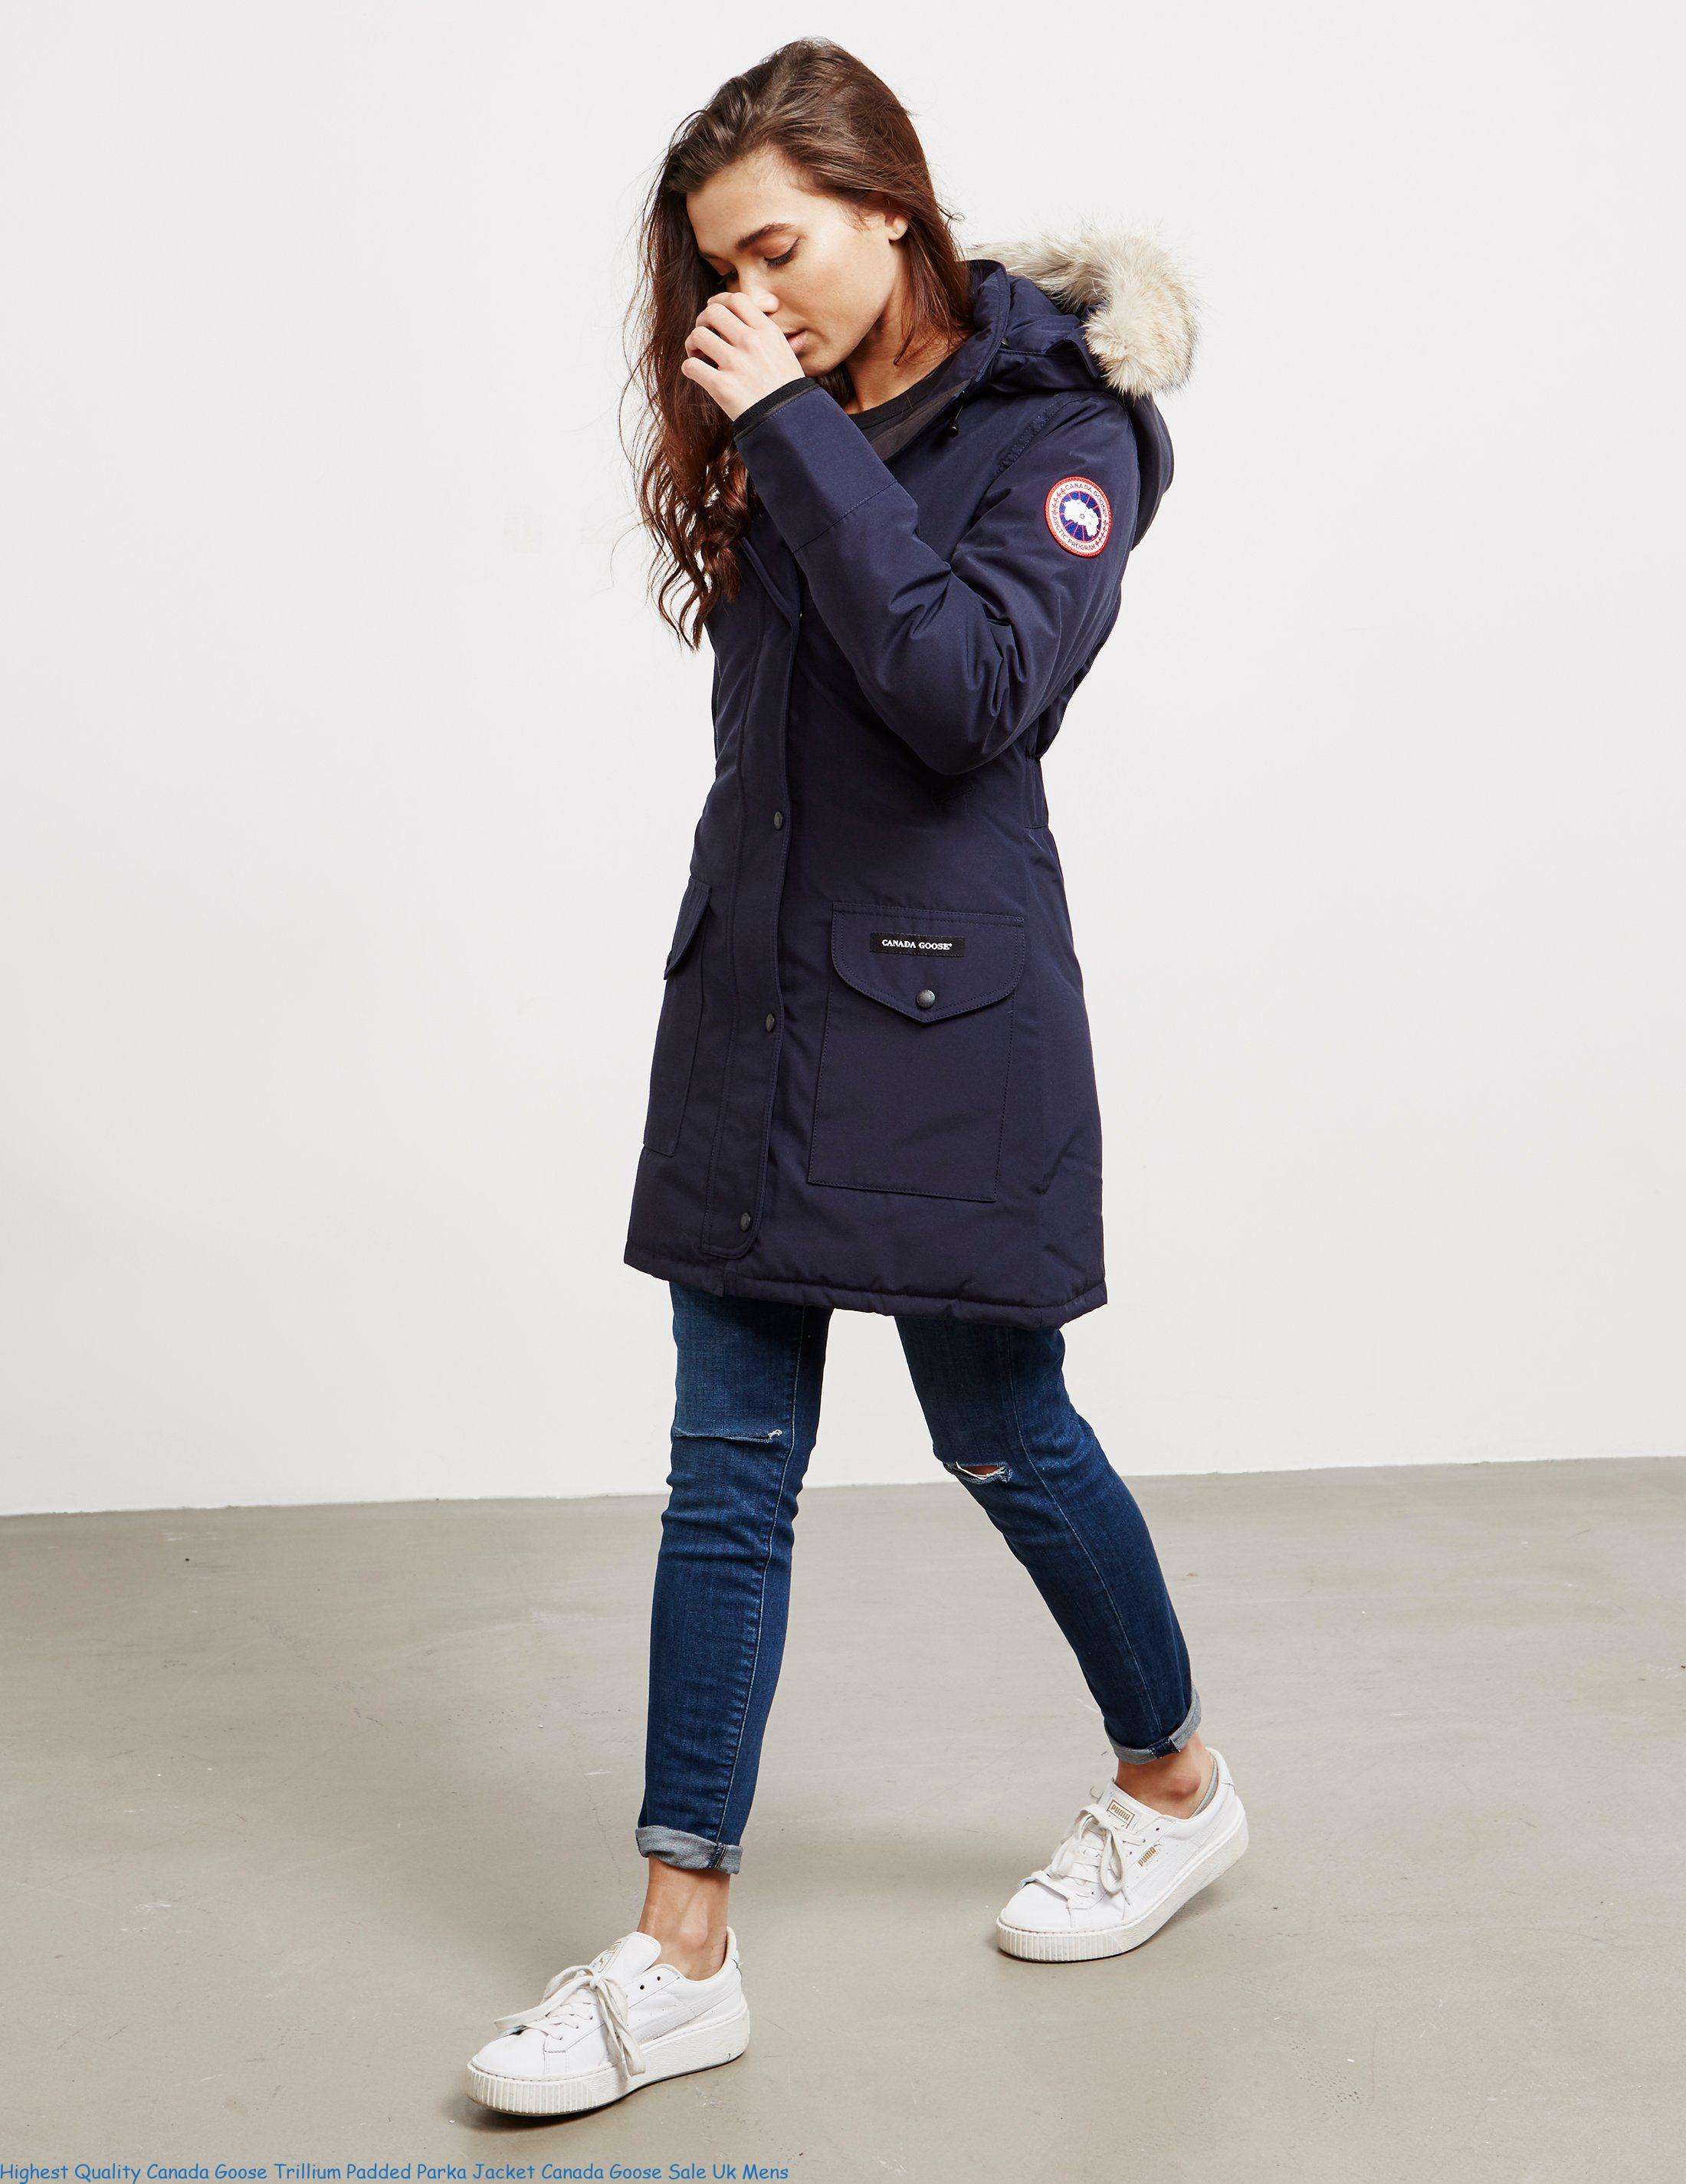 b8da912ebb7 Highest Quality Canada Goose Trillium Padded Parka Jacket Canada Goose Sale  Uk Mens – Canada Goose UK Outlet | Cheap Canada Goose Jackets,Coats,Parka  Online ...